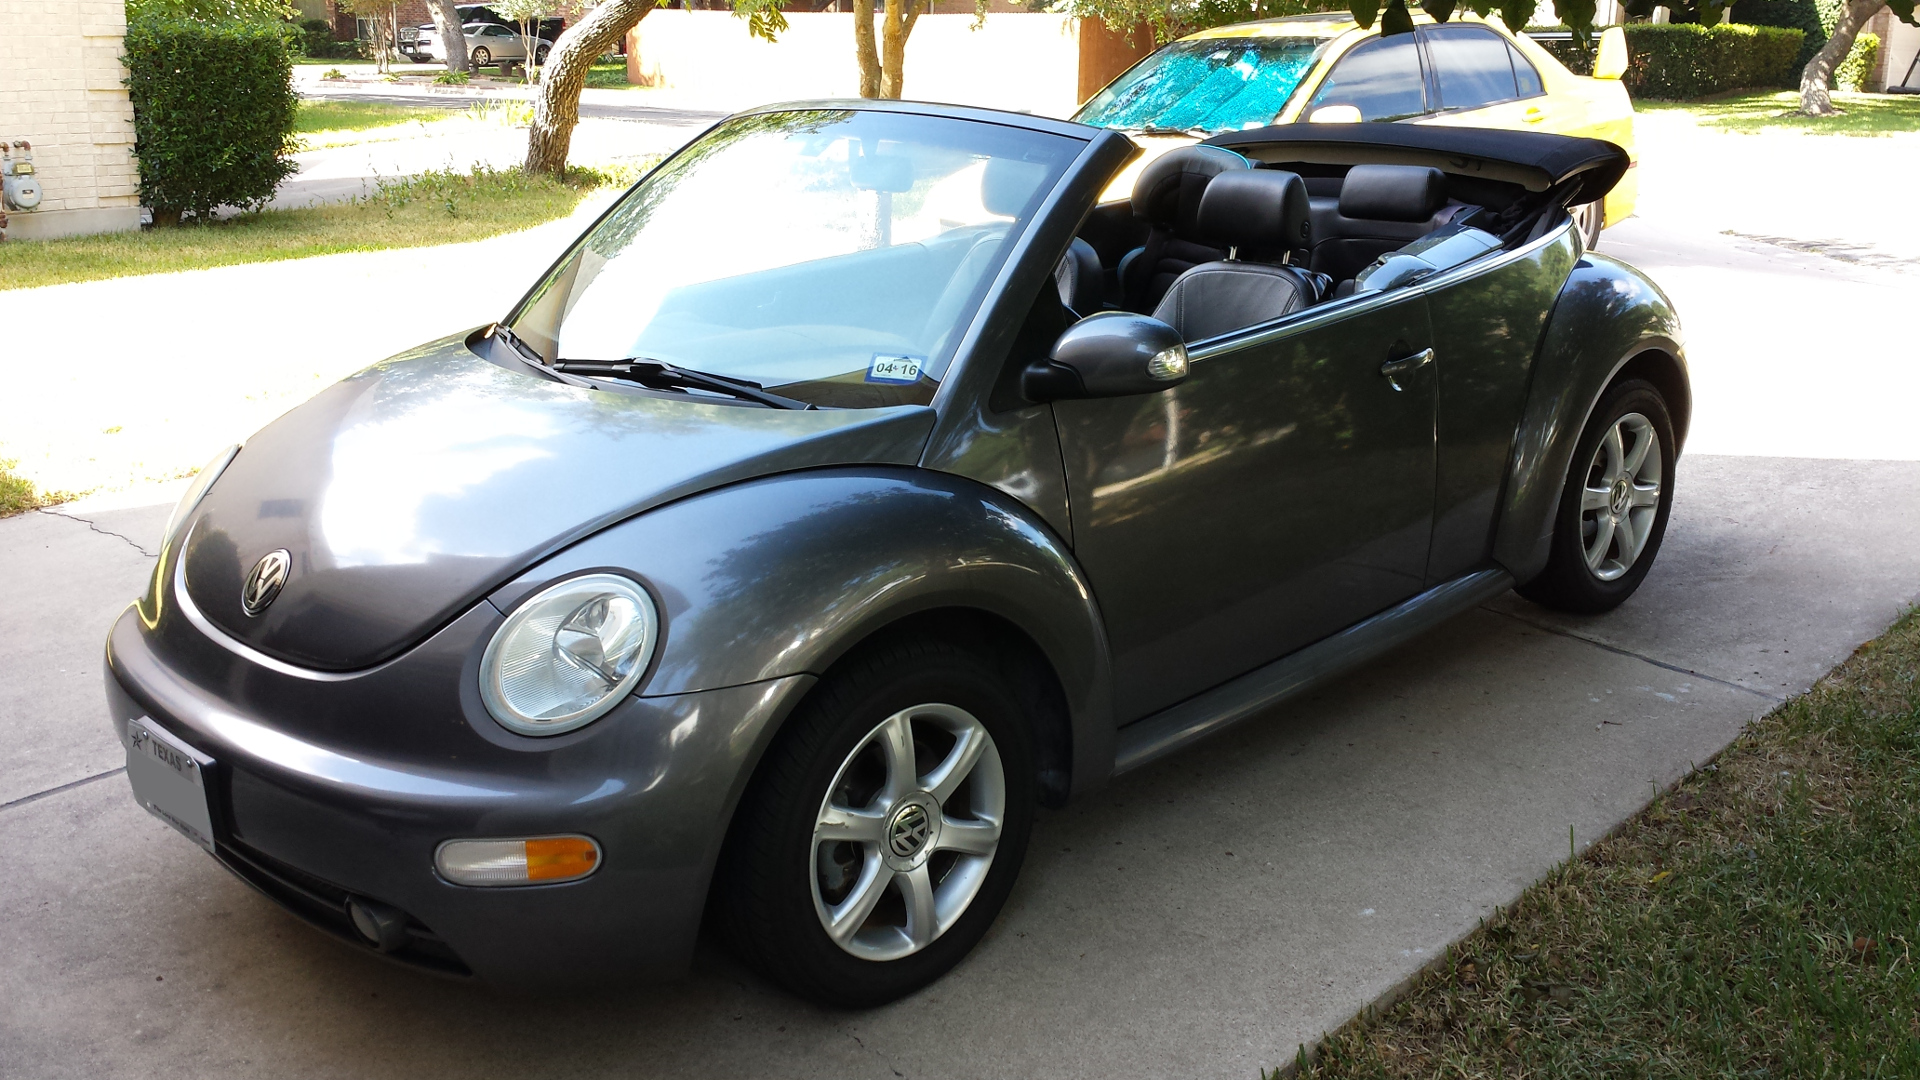 2005 Volkswagen Beetle Turbo Convertible